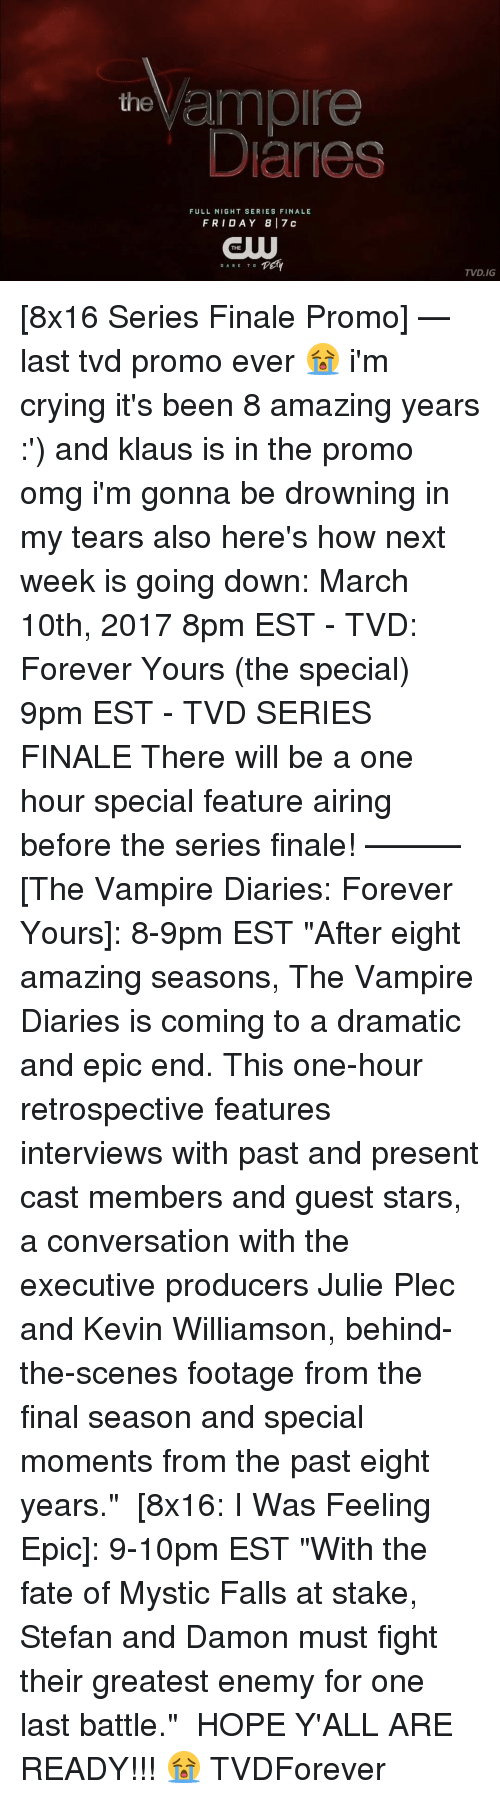 "Memes, Fate, and Mysticism: the  ample  Danes  FULL NIGHT SERIES FINALE  FRI DAY 8 17 c  THE  TEHY  DARE TO  TVD.IG [8x16 Series Finale Promo] — last tvd promo ever 😭 i'm crying it's been 8 amazing years :') and klaus is in the promo omg i'm gonna be drowning in my tears also here's how next week is going down: March 10th, 2017 8pm EST - TVD: Forever Yours (the special) 9pm EST - TVD SERIES FINALE There will be a one hour special feature airing before the series finale! ——— [The Vampire Diaries: Forever Yours]: 8-9pm EST ""After eight amazing seasons, The Vampire Diaries is coming to a dramatic and epic end. This one-hour retrospective features interviews with past and present cast members and guest stars, a conversation with the executive producers Julie Plec and Kevin Williamson, behind-the-scenes footage from the final season and special moments from the past eight years."" ⠀ [8x16: I Was Feeling Epic]: 9-10pm EST ""With the fate of Mystic Falls at stake, Stefan and Damon must fight their greatest enemy for one last battle."" ⠀ HOPE Y'ALL ARE READY!!! 😭 TVDForever"